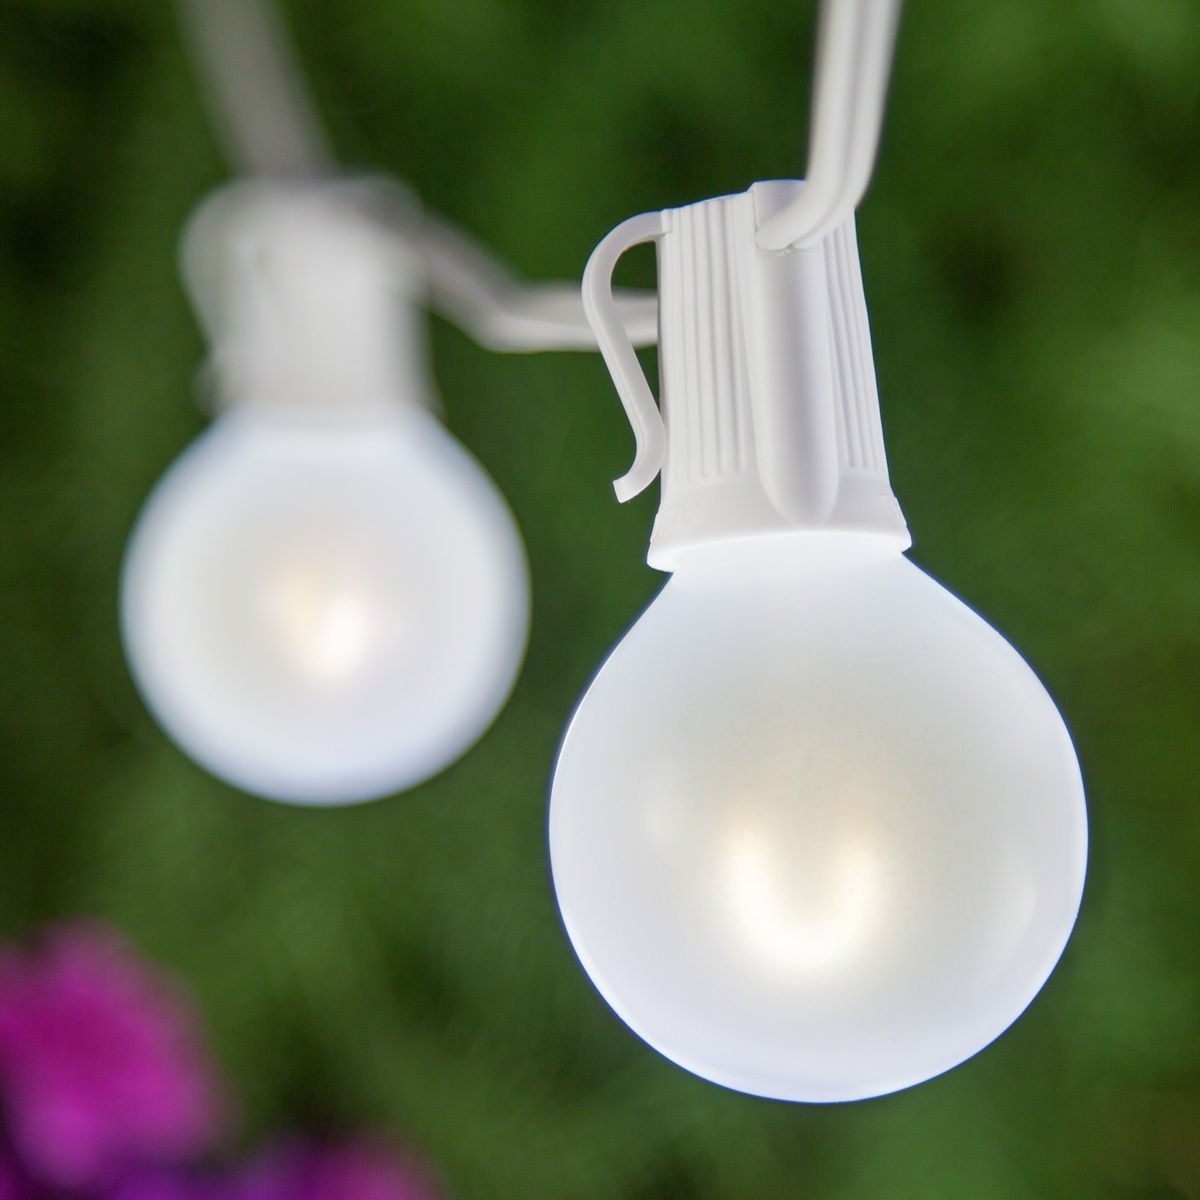 & Patio Lights - Cool White Satin LED Lights 50 G50 E12 Bulbs White Wire